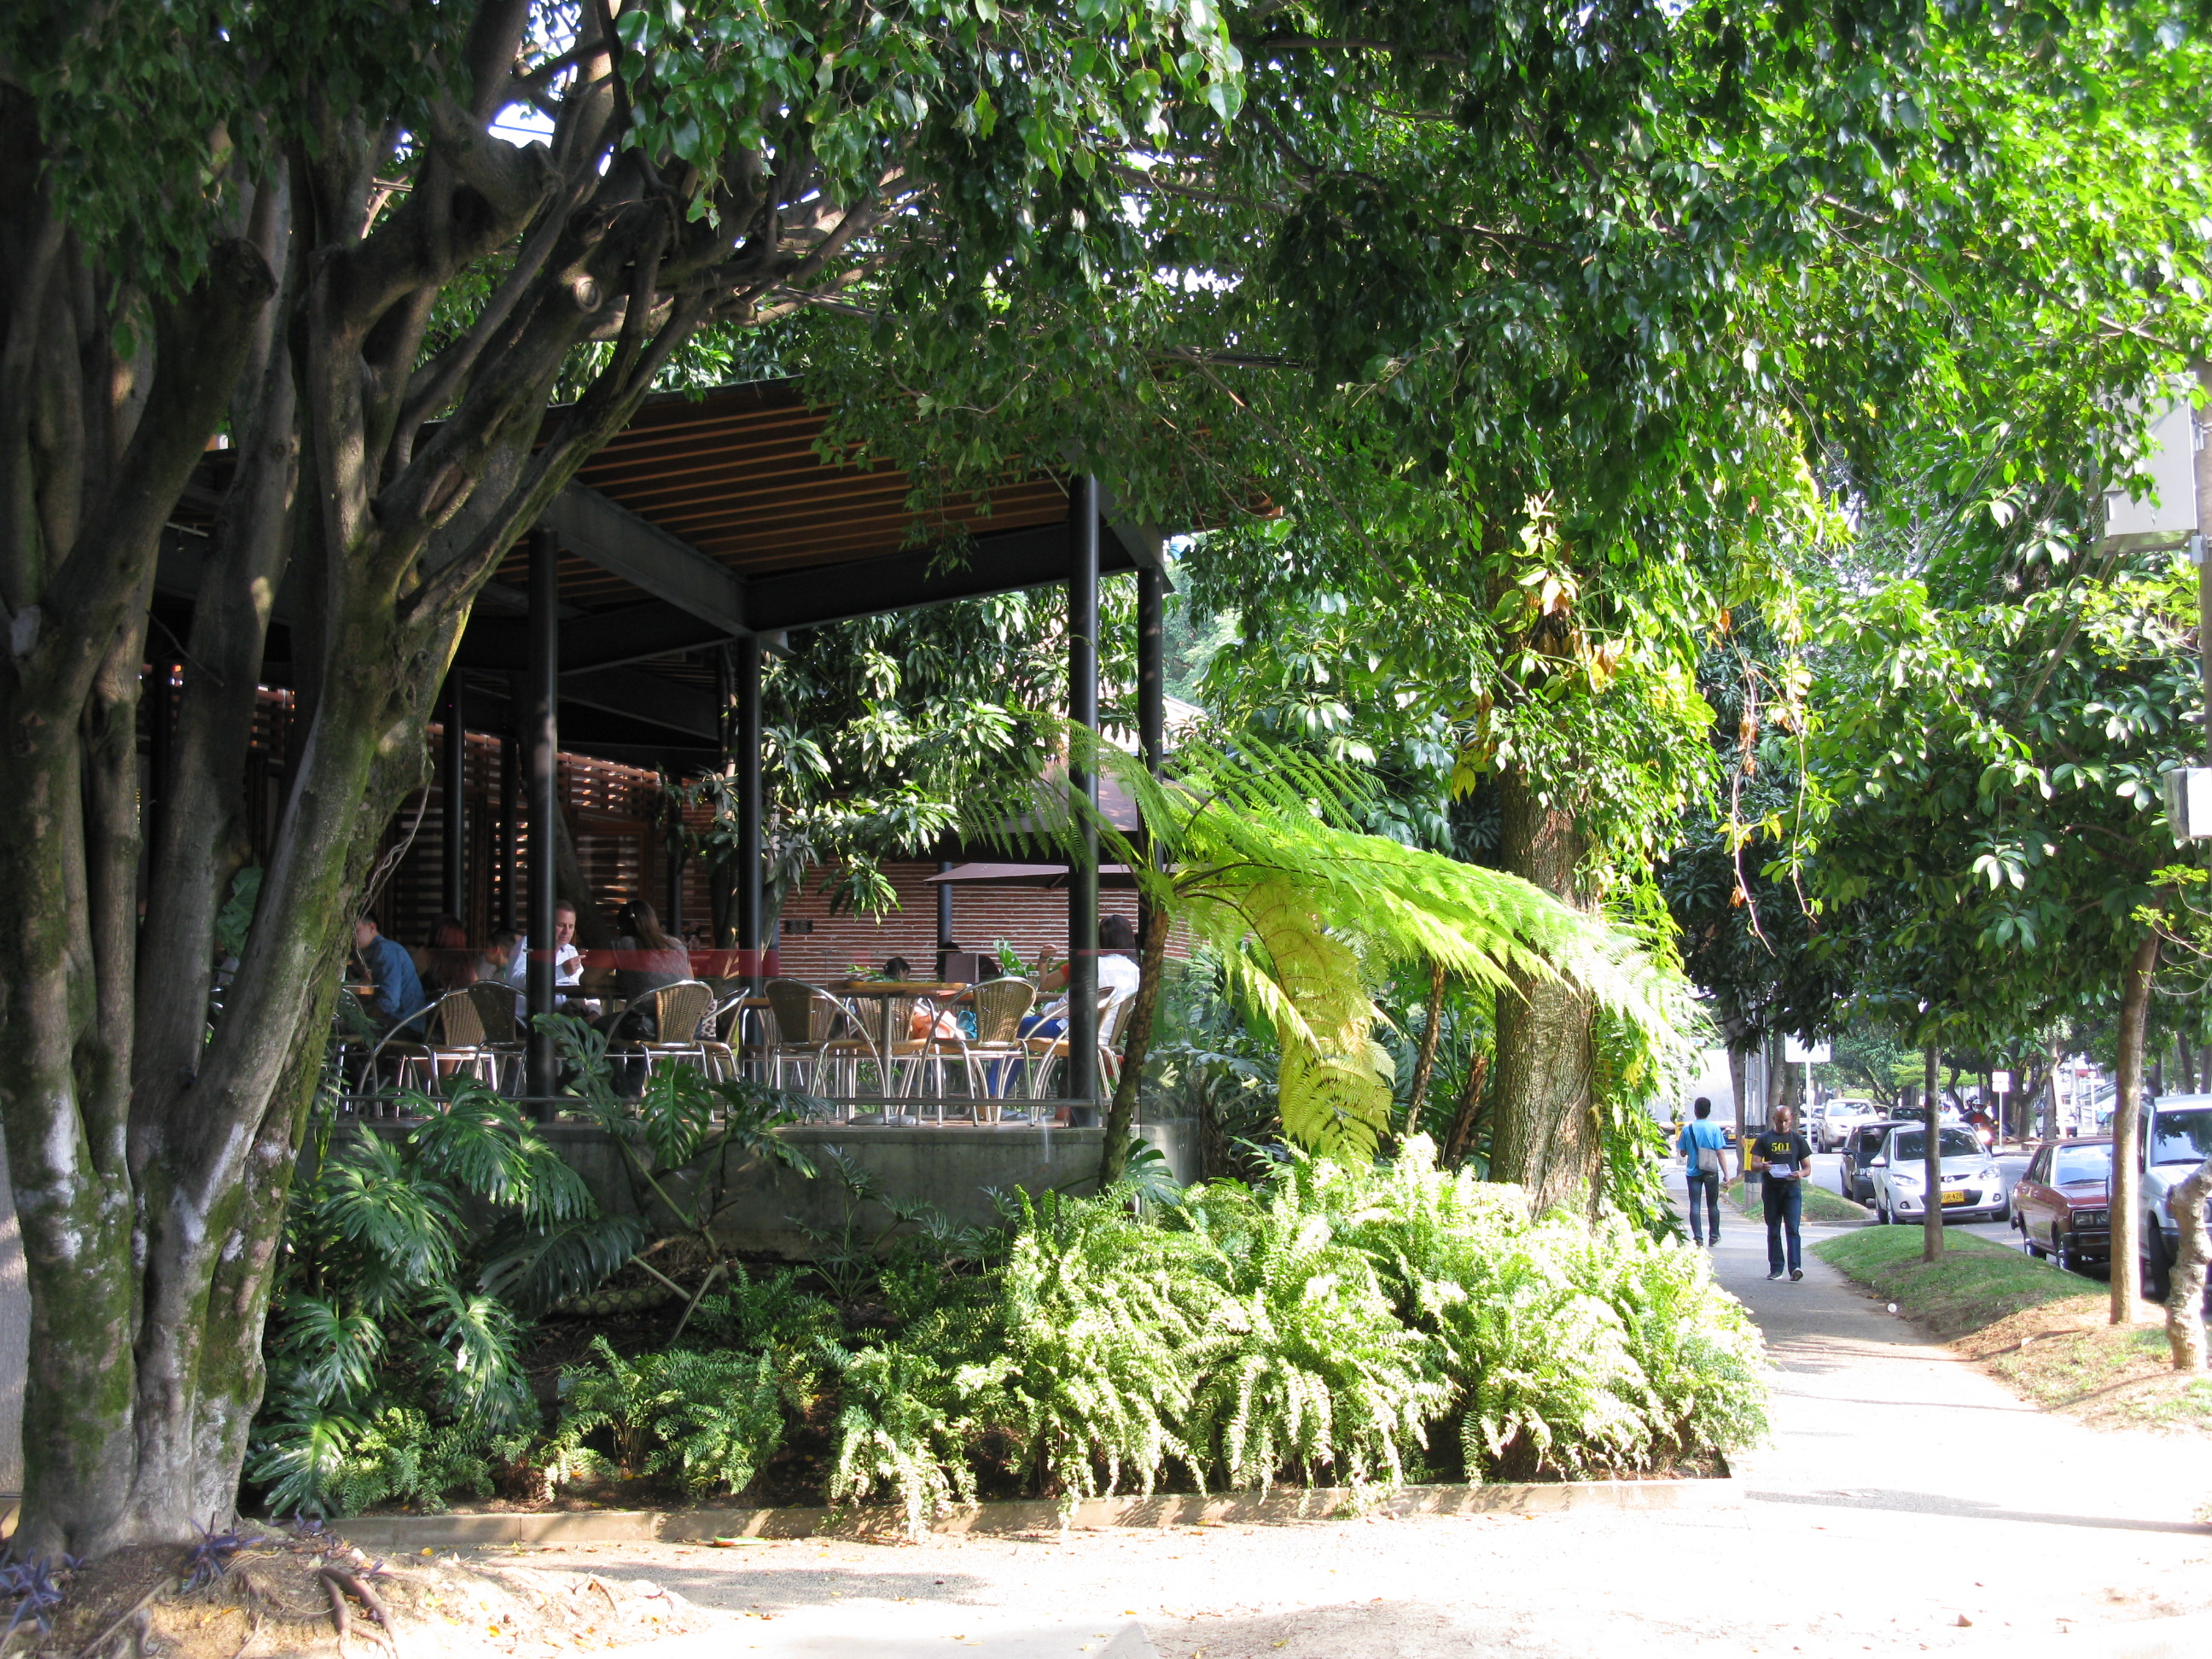 Laureles cafes are visited by people throughout  Medellin